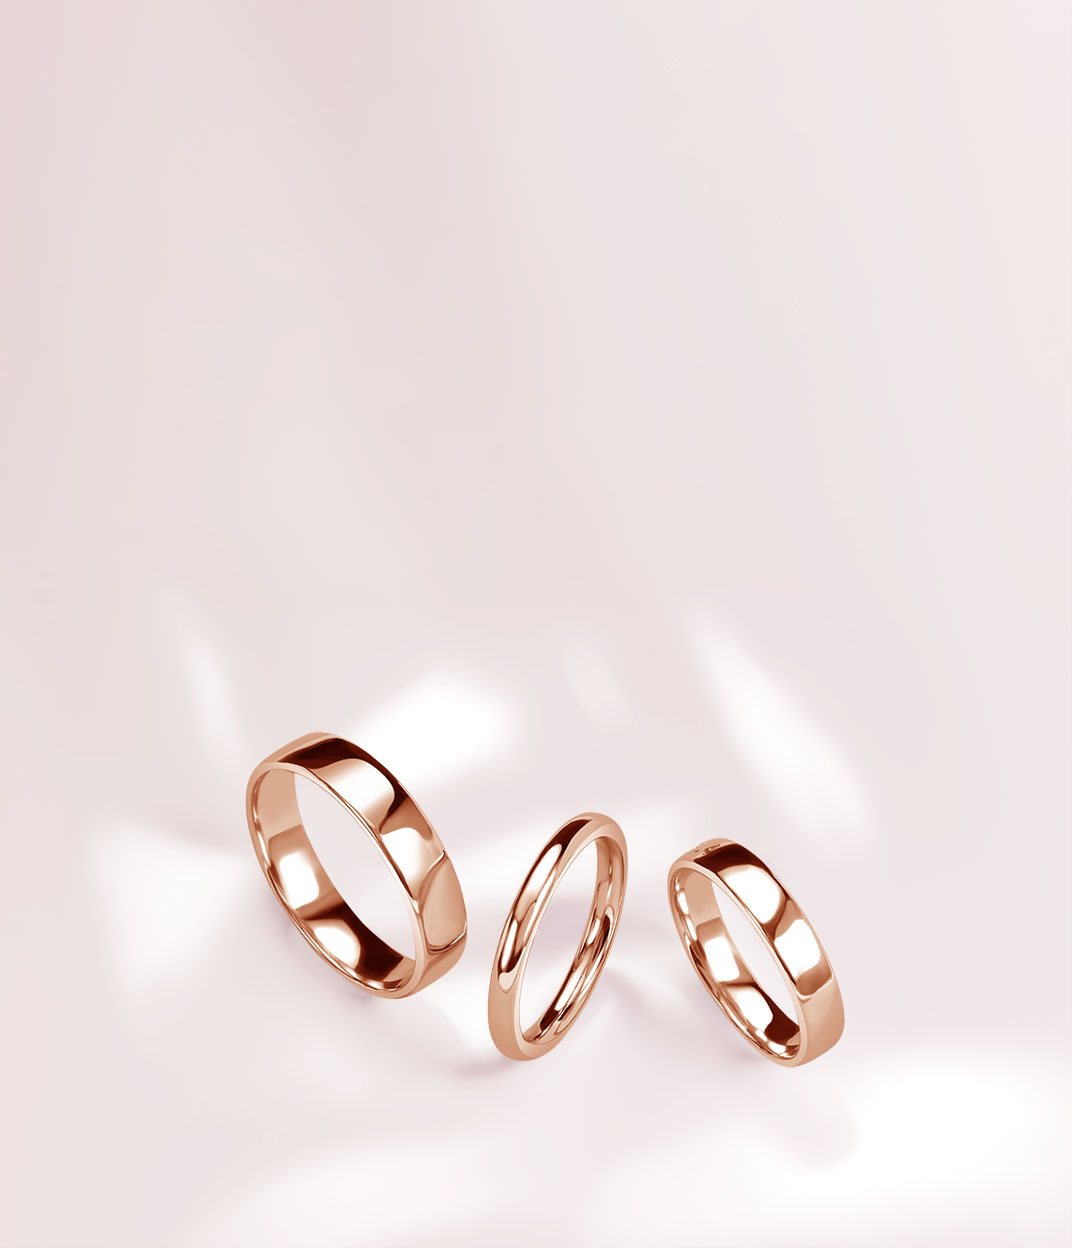 Rose Gold Wedding Rings - Steven Stone